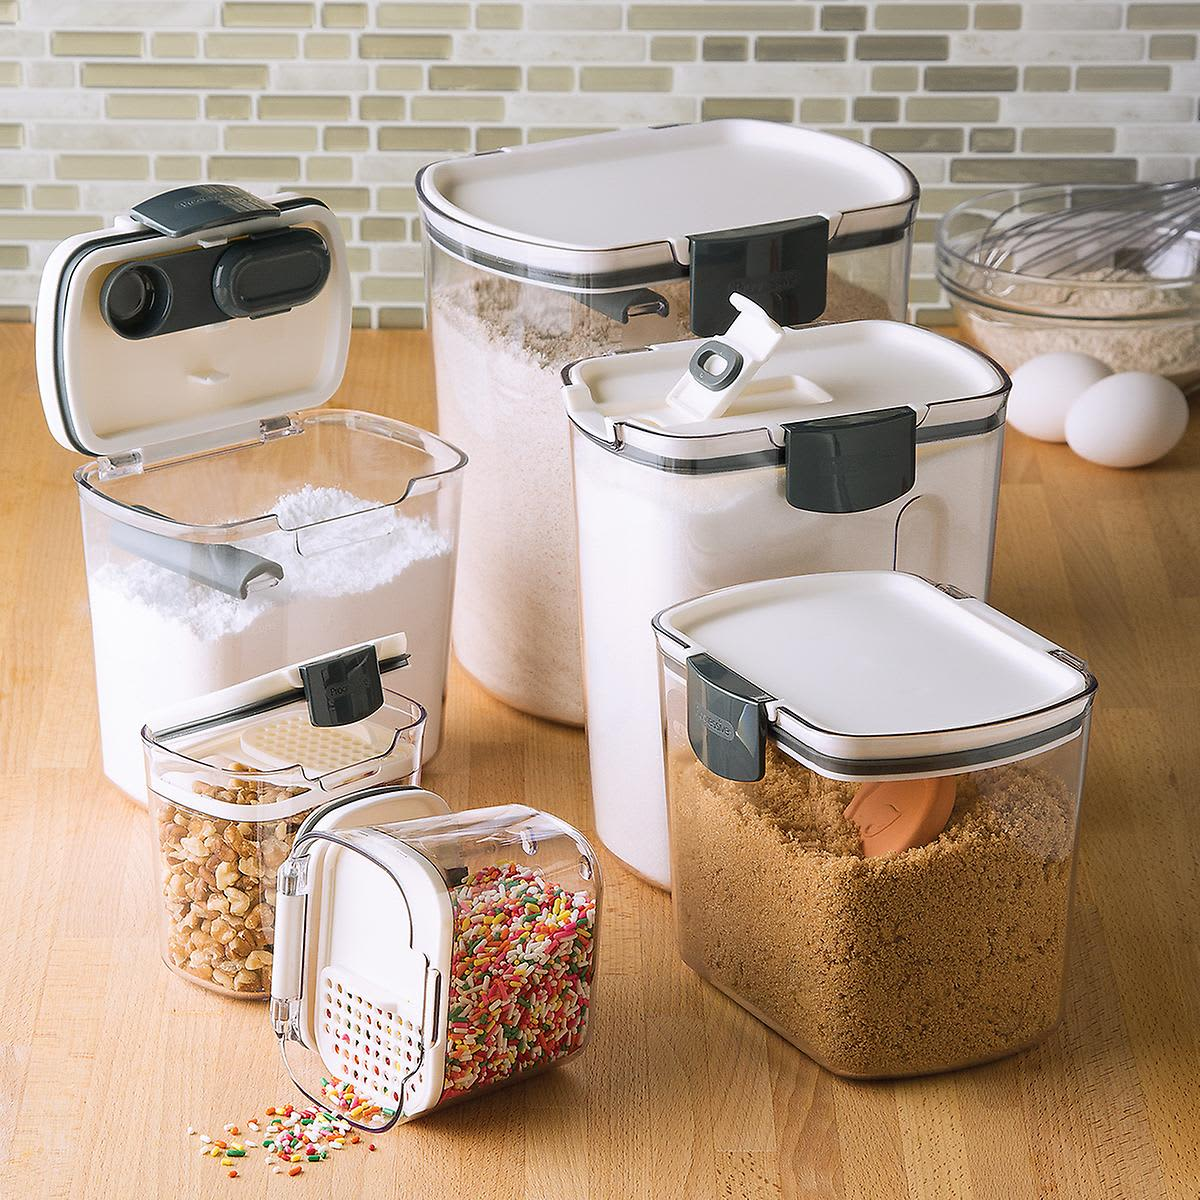 Astonishing The Container Store Best Products Kitchn Best Image Libraries Thycampuscom